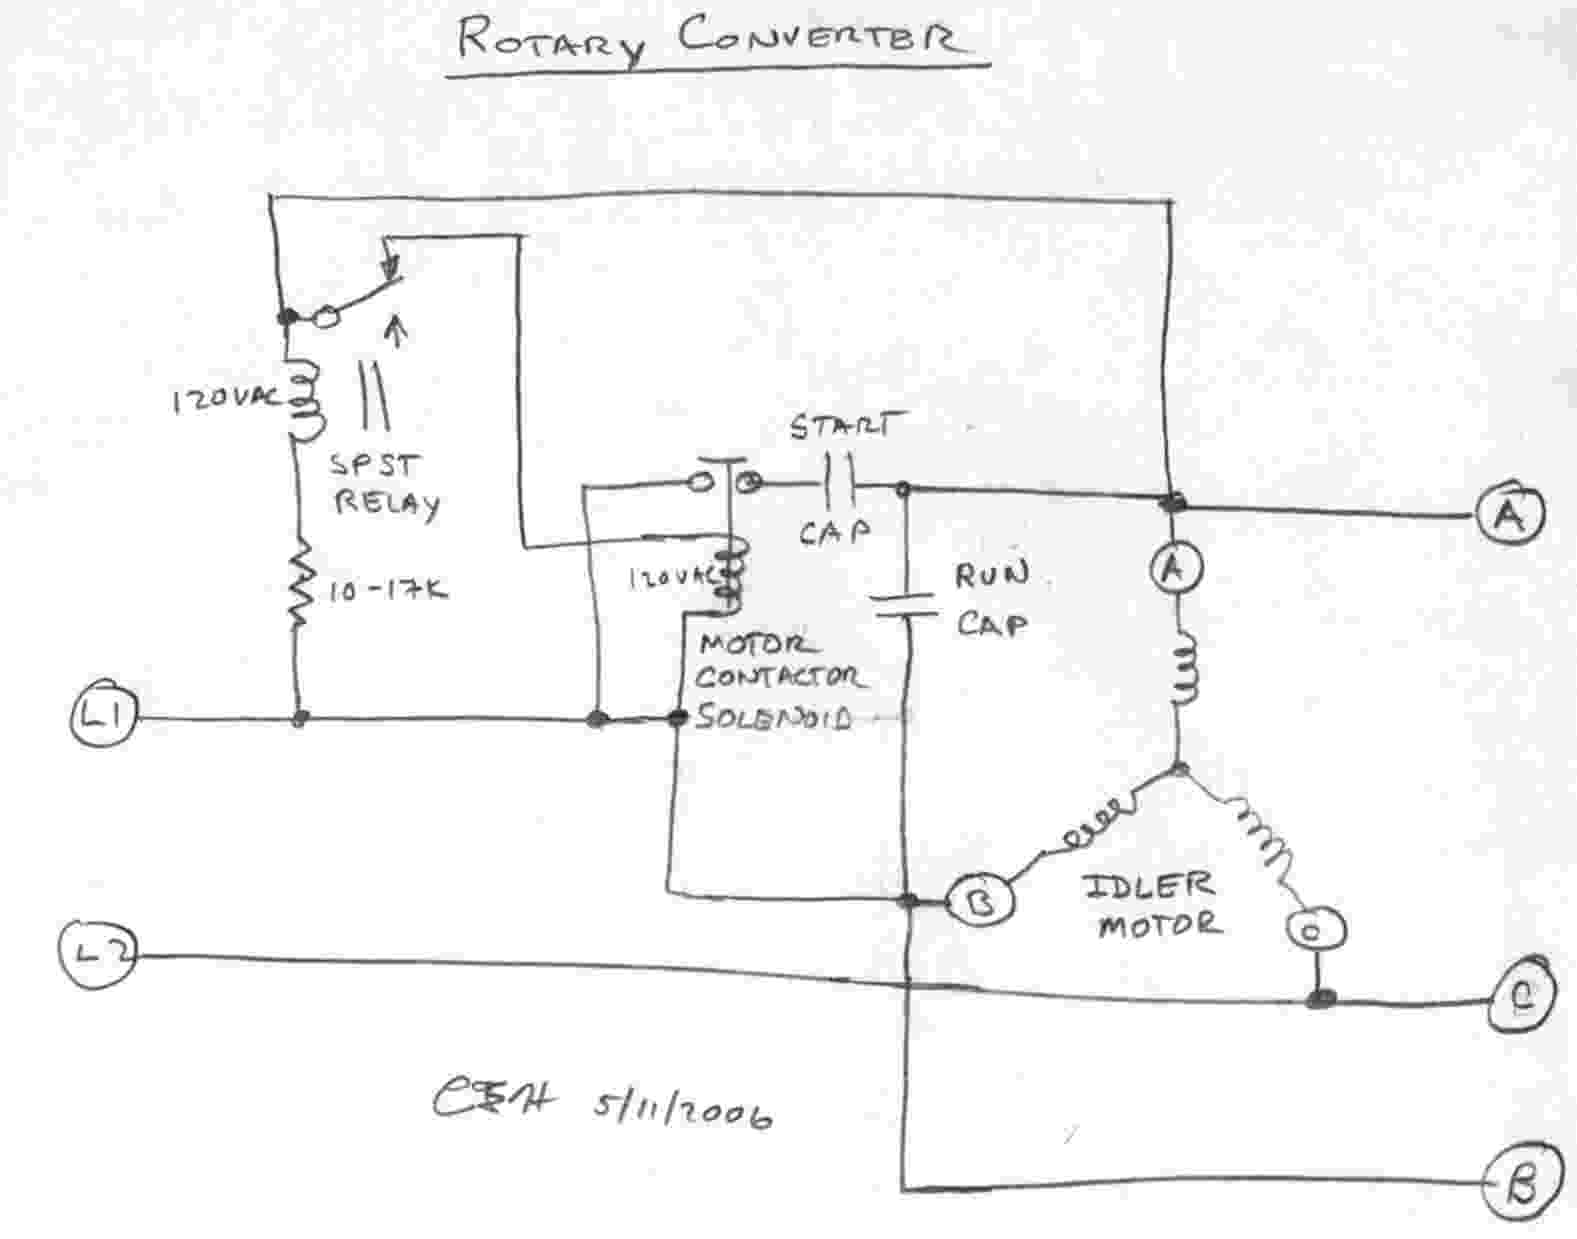 rotaryconv 3 phase converters how to build rotary phase converter wiring diagram at crackthecode.co